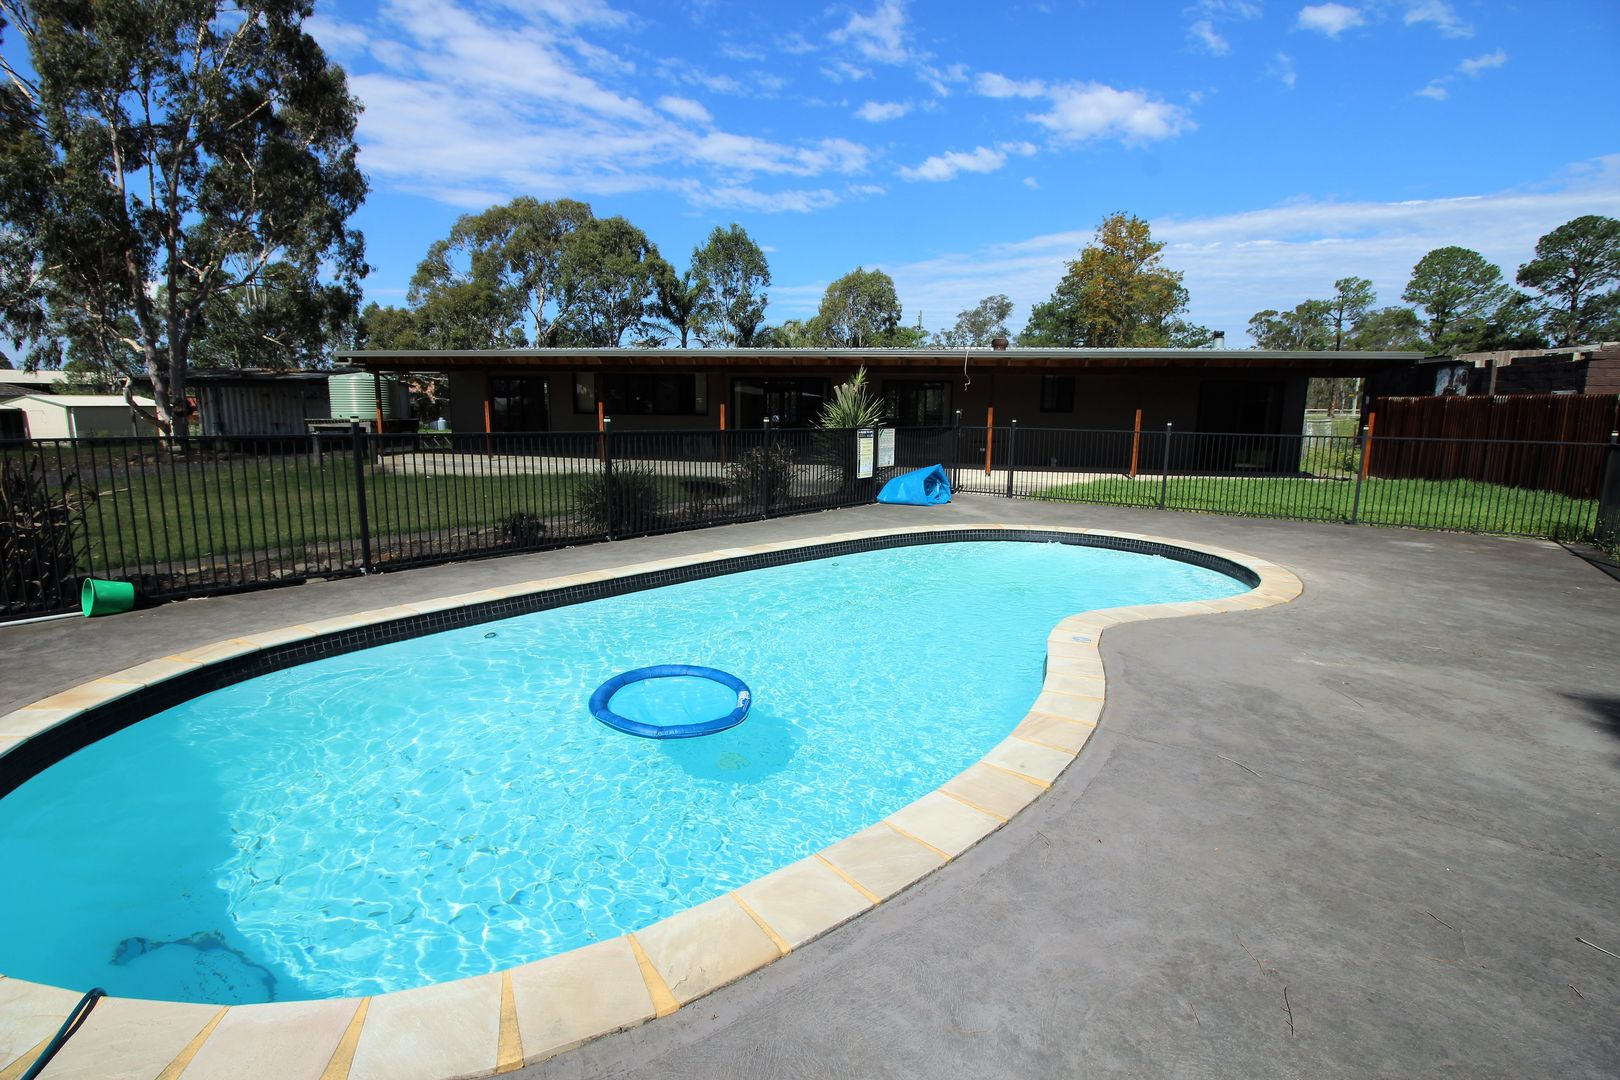 754 Londonderry Rd (Rear Home), Londonderry NSW 2753, Image 0